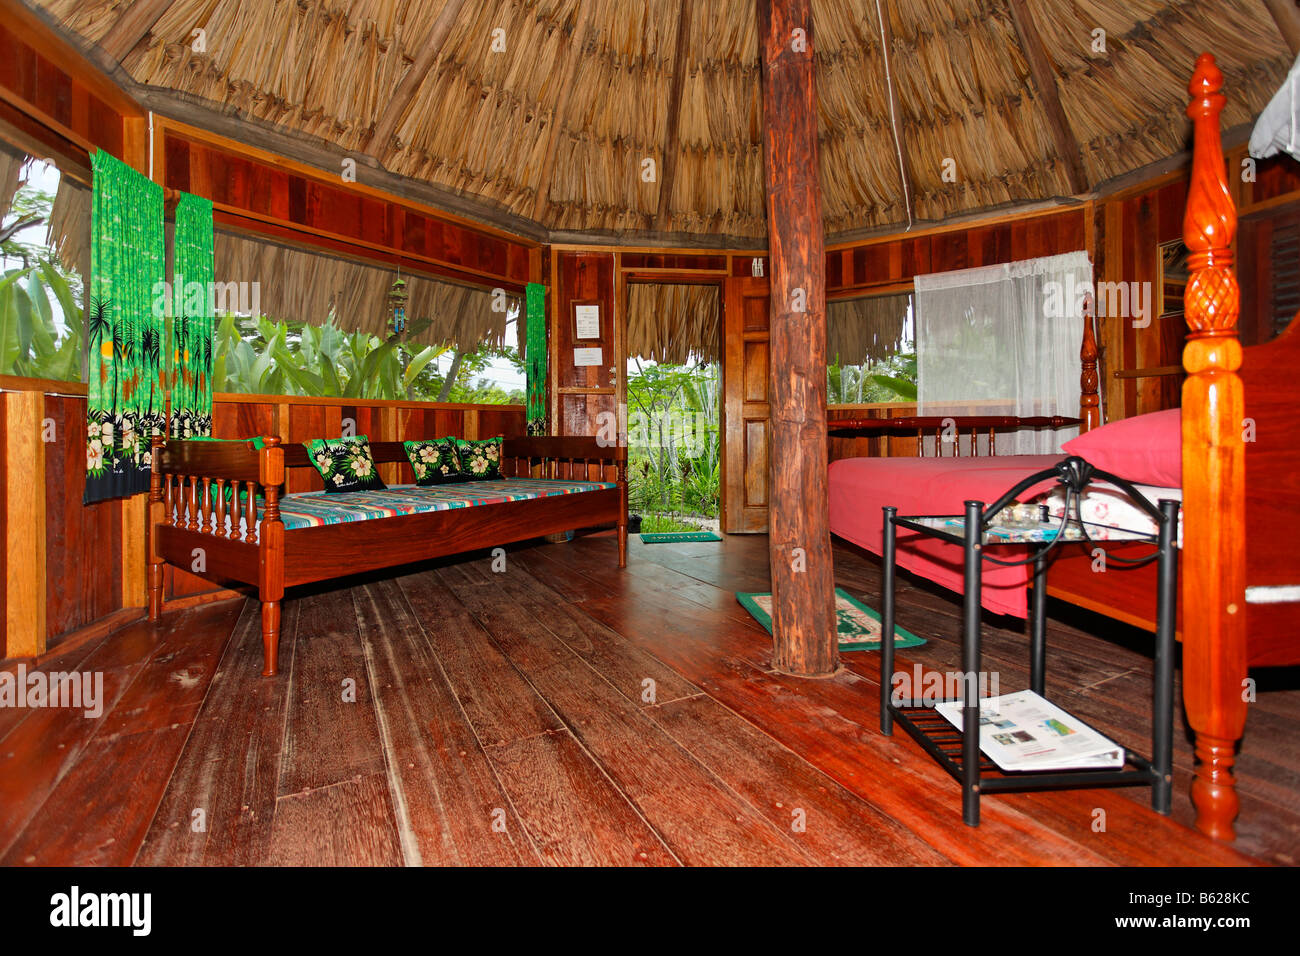 Sun Creek Resort, interior view, Punta Gorda, Belize, Central America Stock Photo